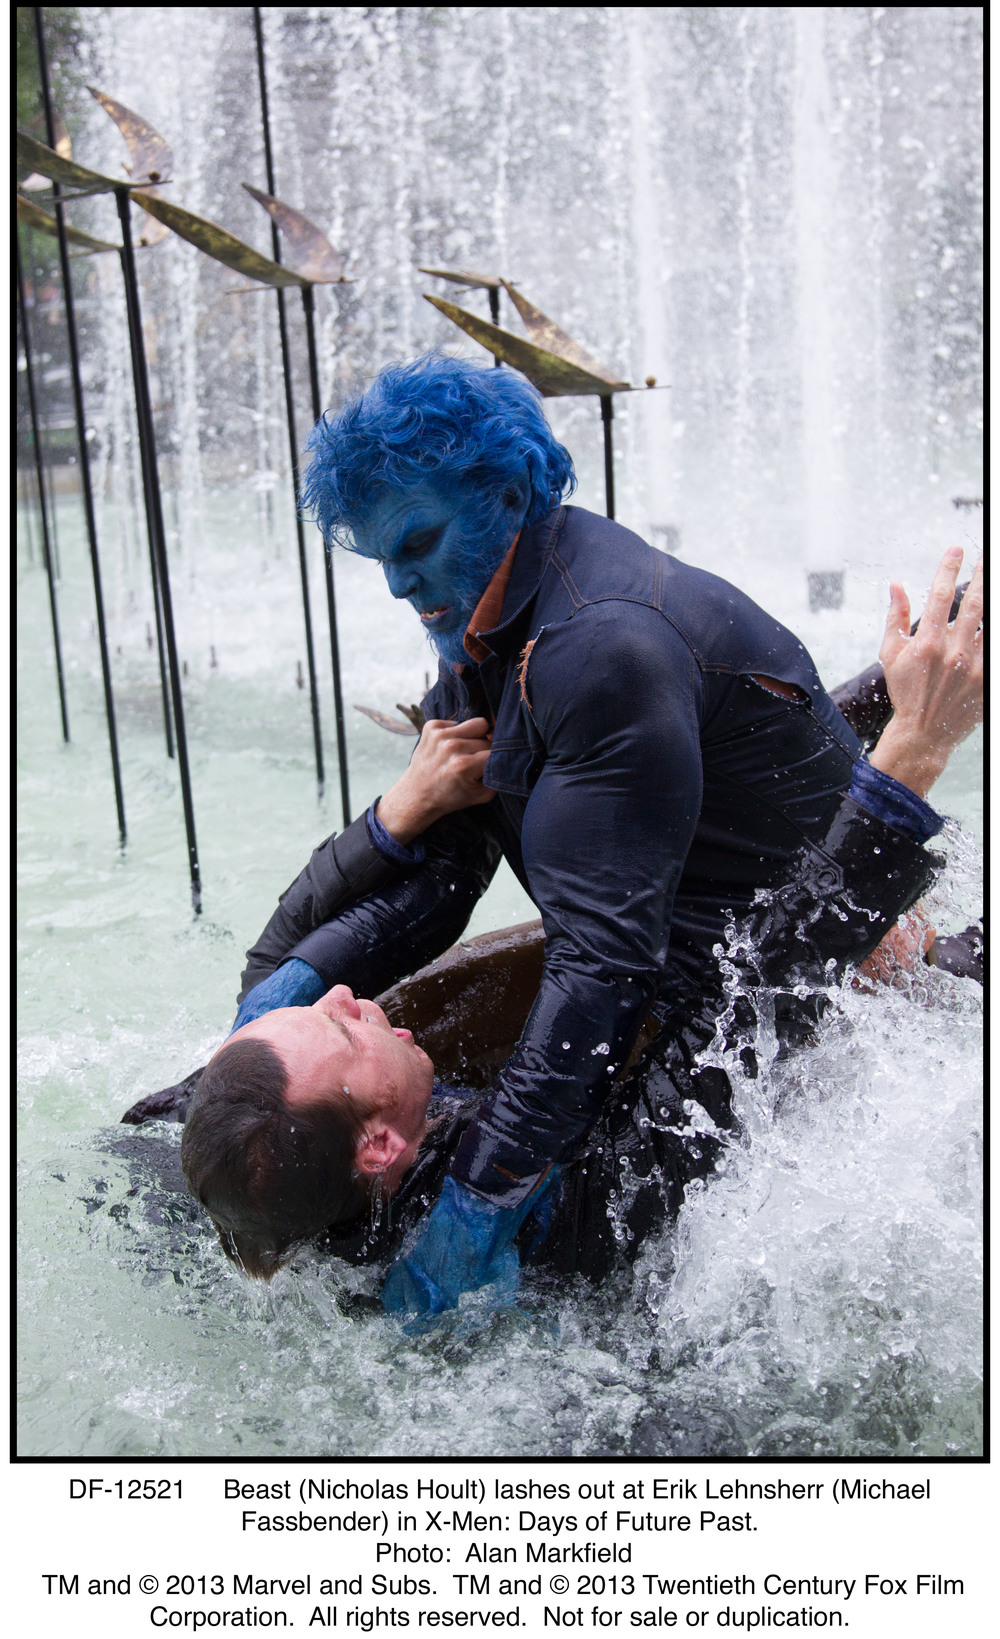 DF-12521   Beast (Nicholas Hoult) lashes out at Erik Lehnsherr (Michael Fassbender) in X-Men: Days of Future's past.